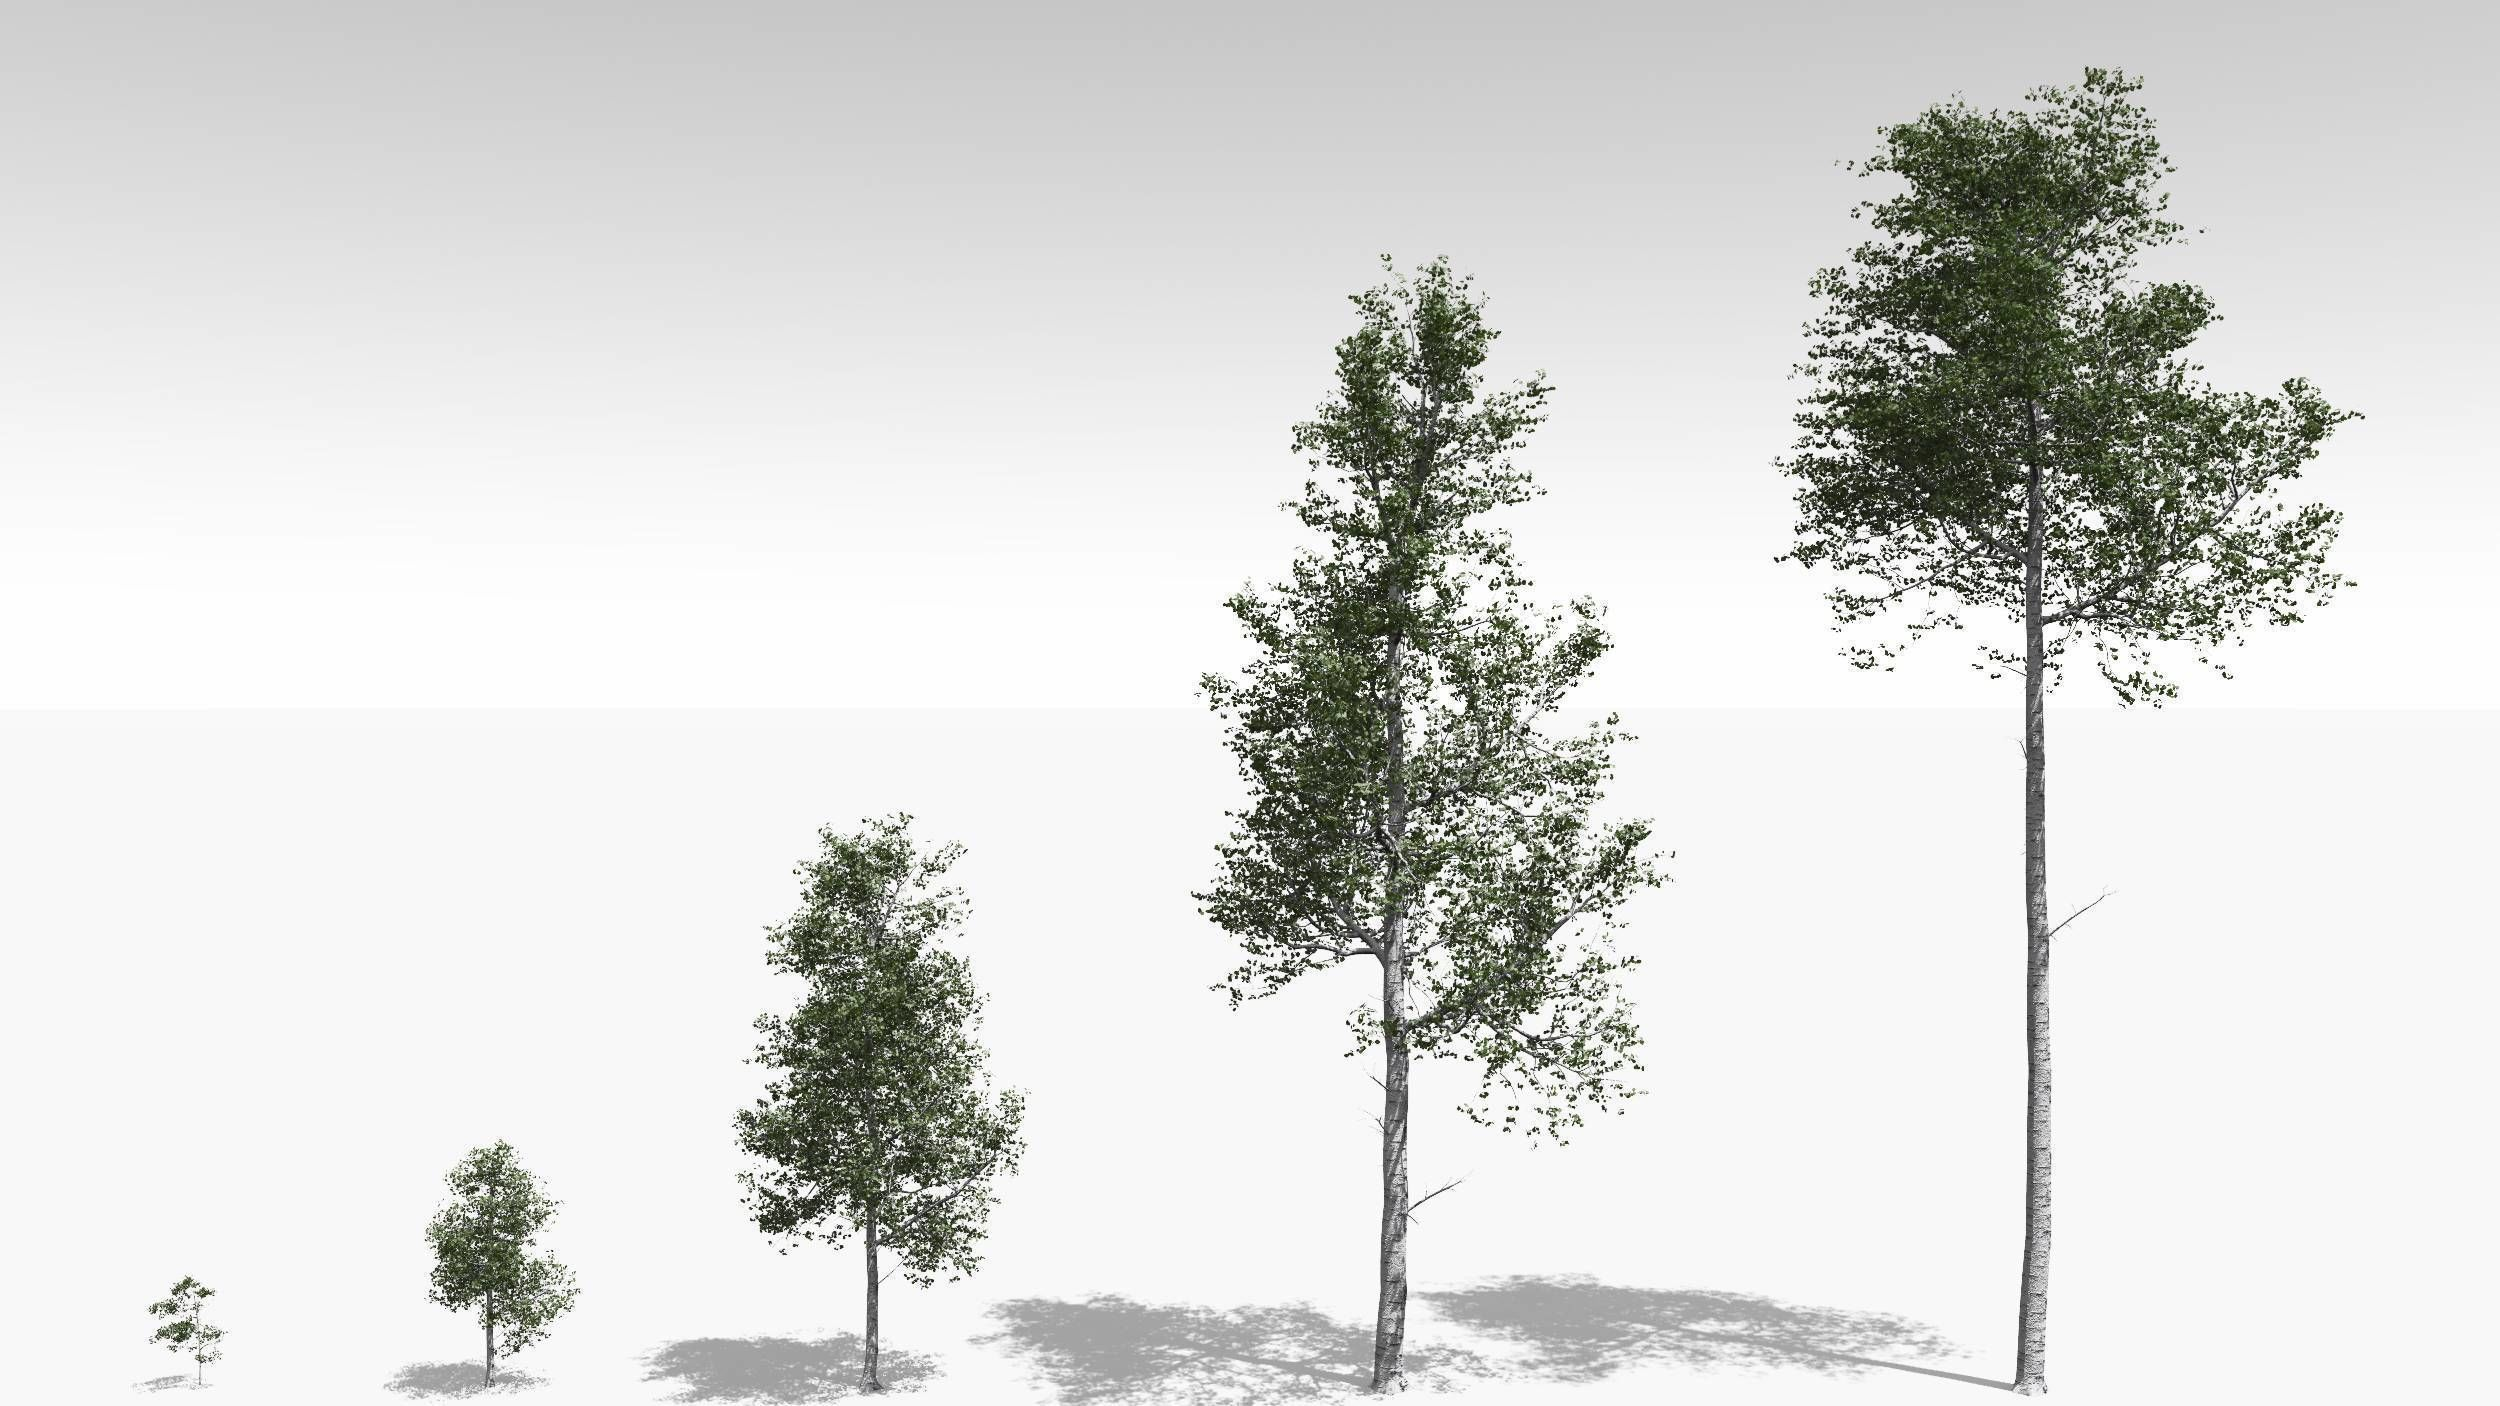 Quaking Aspen Model in Multiple Growth Stages